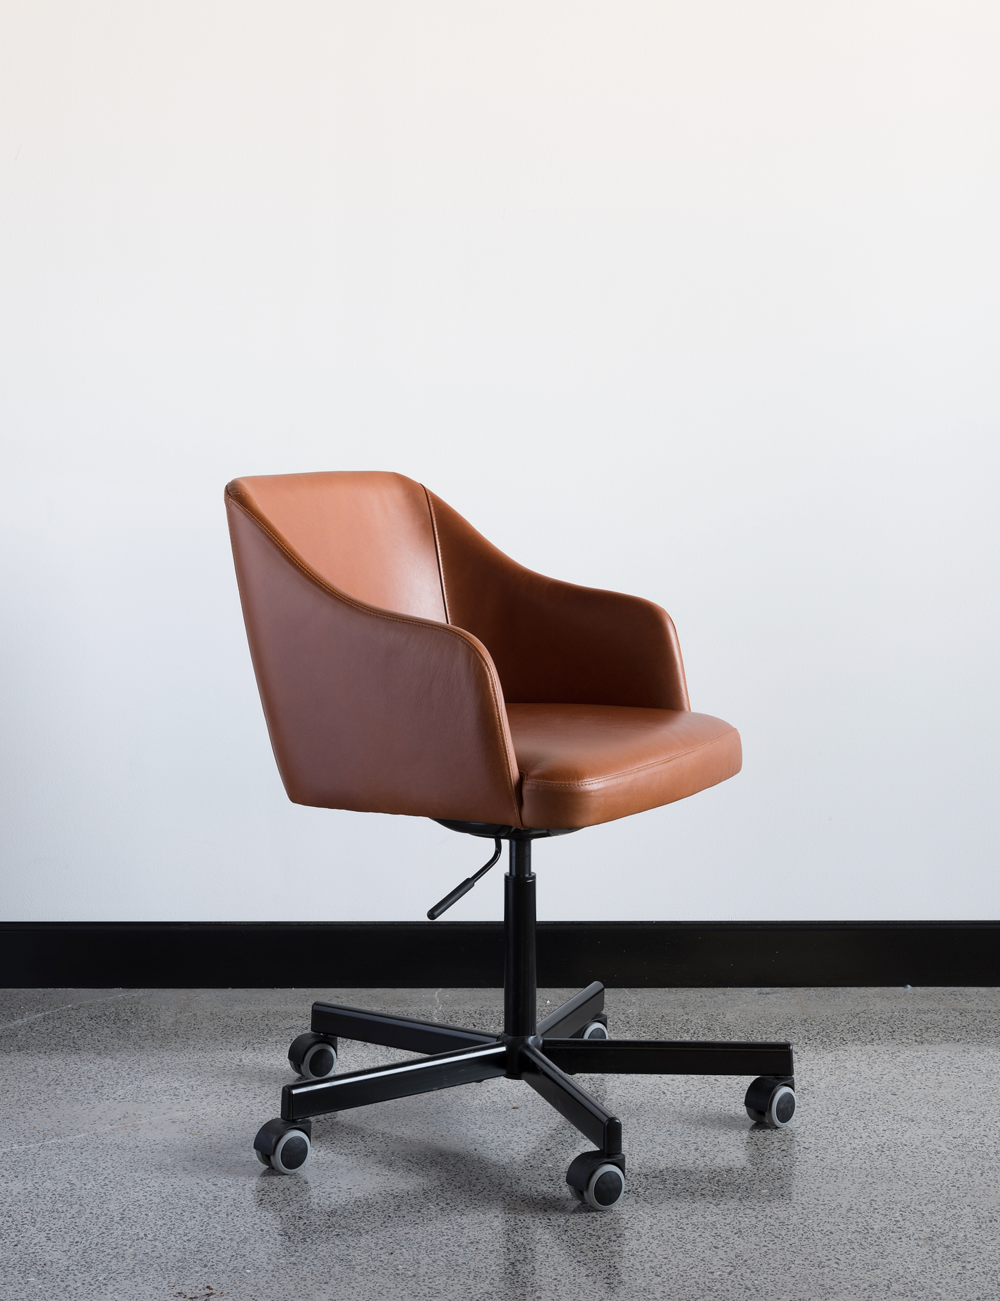 Cuir chair – Custom designed / created office chair